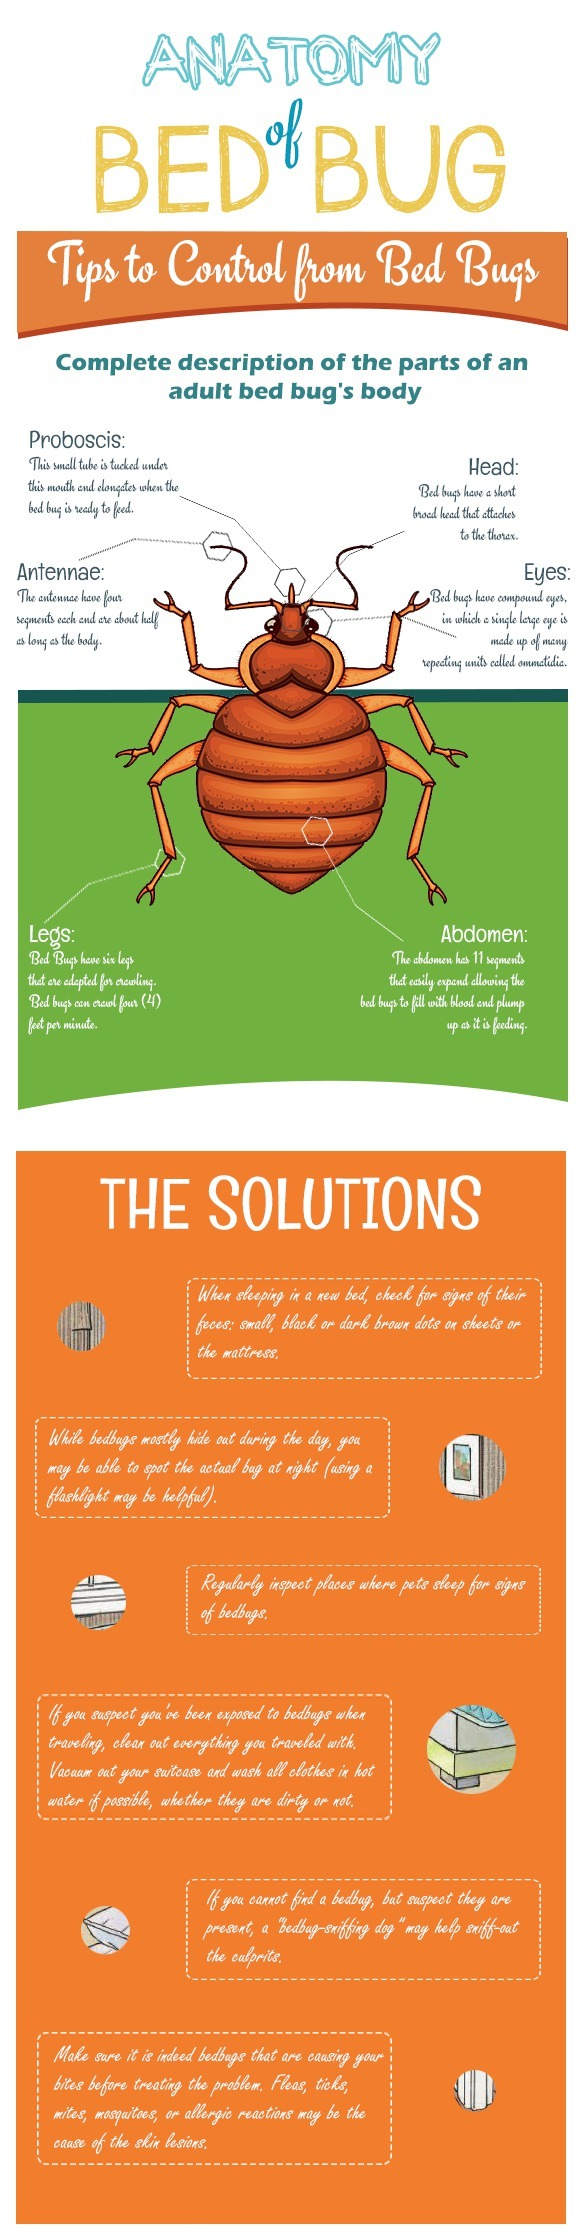 INFOGRAPHIC: Anatomy of a Bed Bug